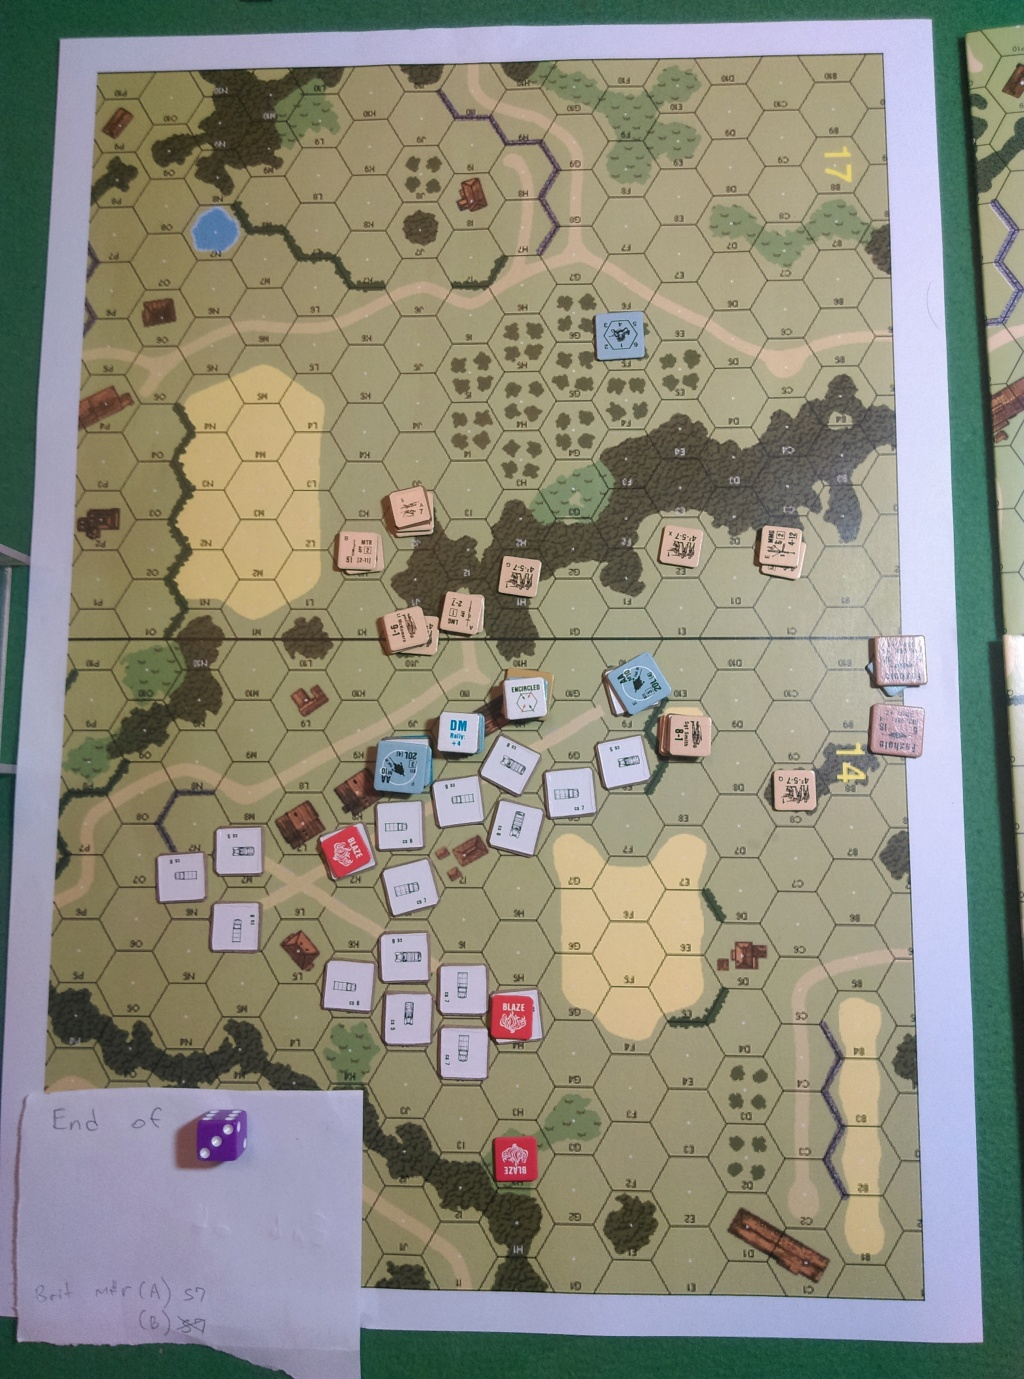 ASL Action In Wugu. ASL-188 and OA-019 (John vs Little Wolf) Oa-01913